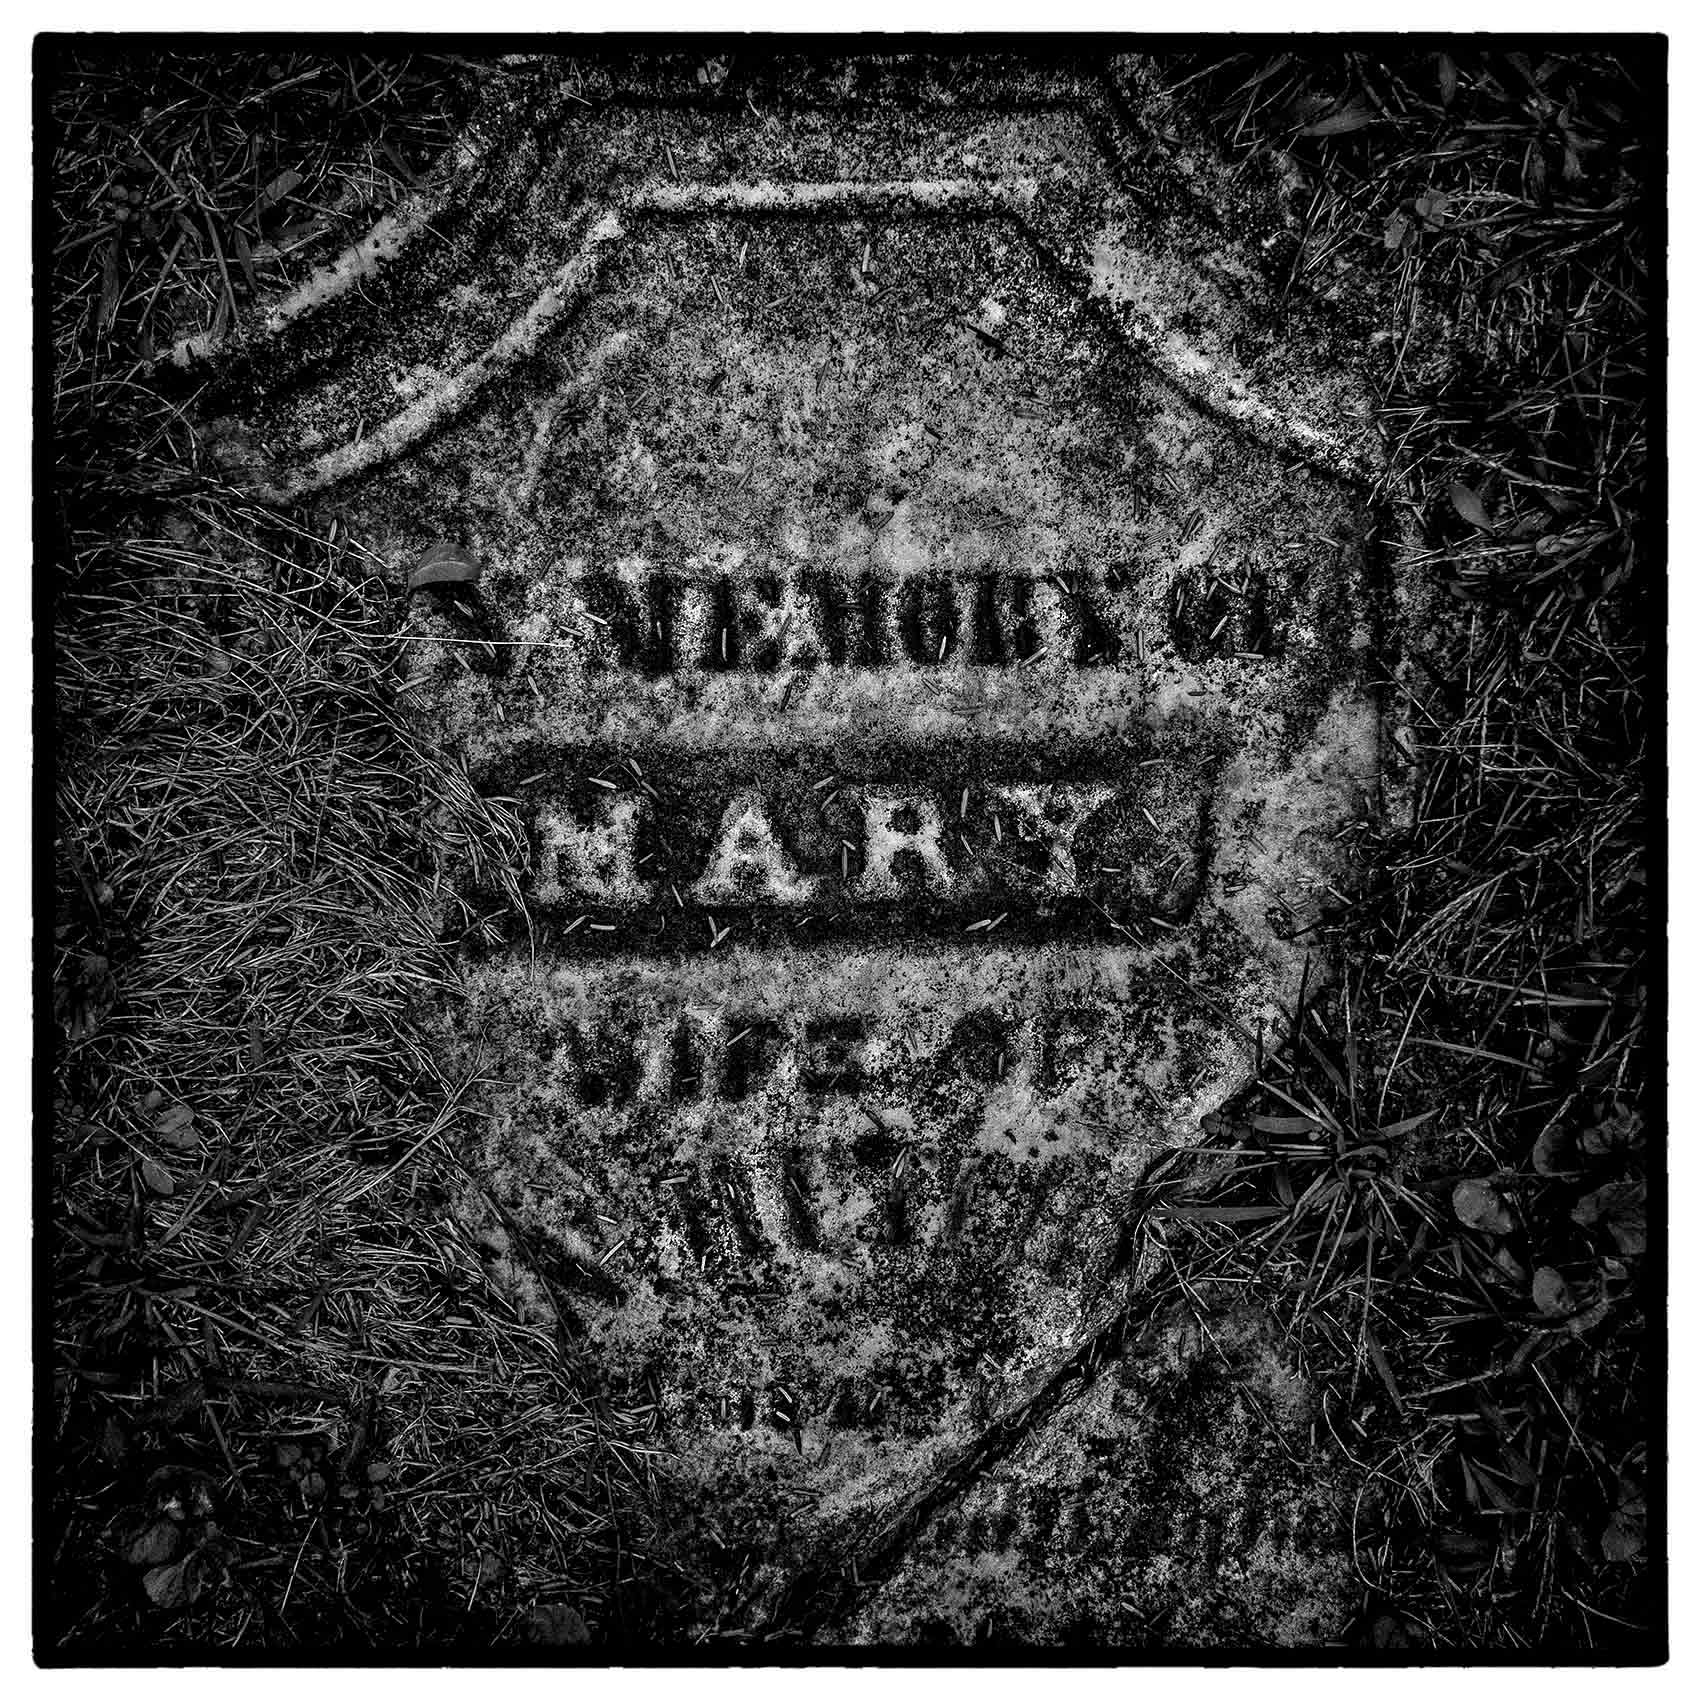 a-moss-covered-tombstone-by-award-winning-Toronto-photographer-John-Hryniuk